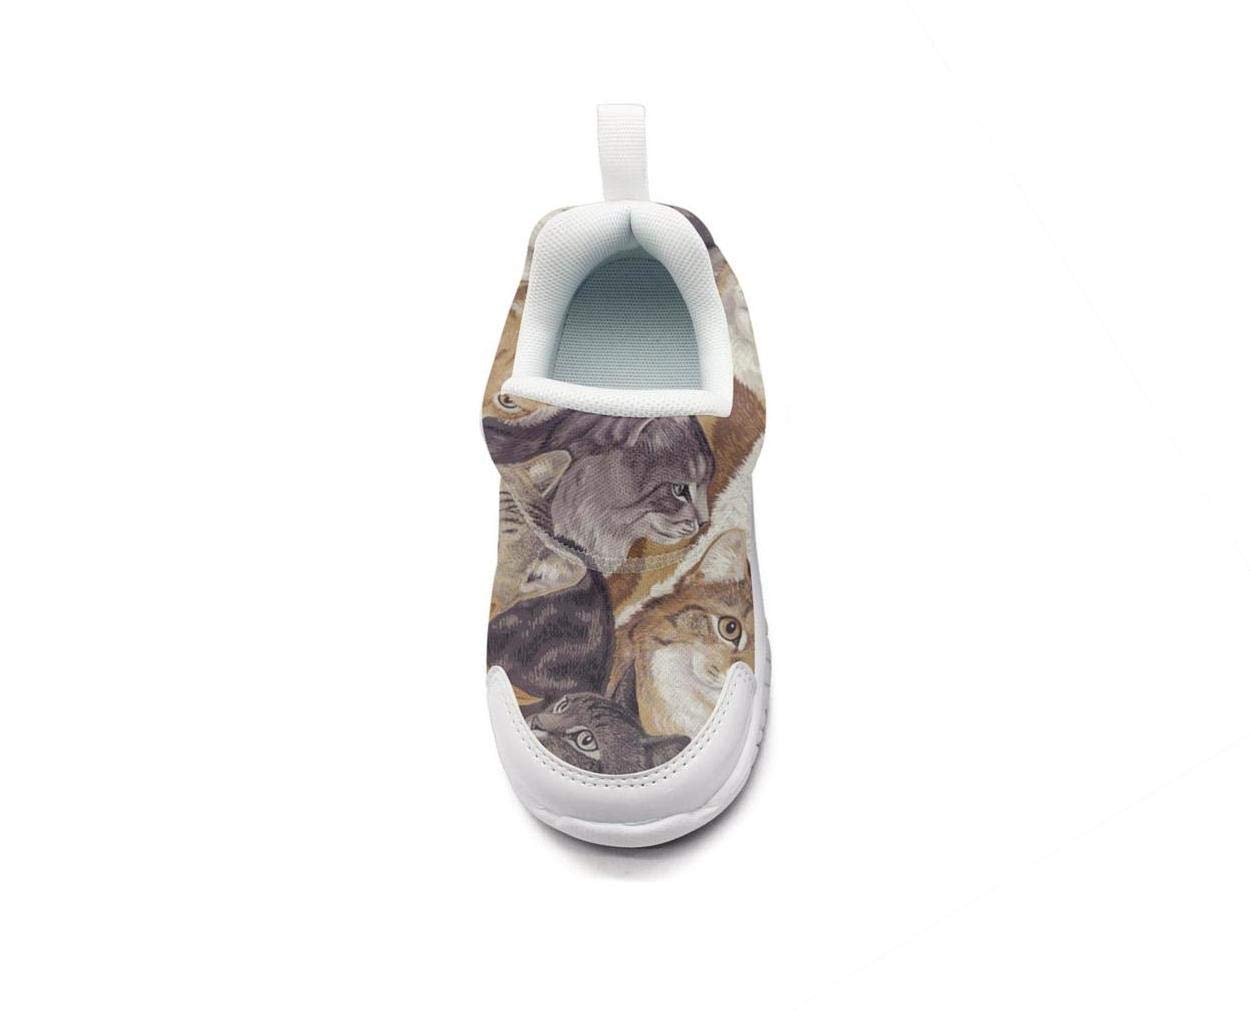 ONEYUAN Children Packed cats-01 Kid Casual Lightweight Sport Shoes Sneakers Walking Athletic Shoes